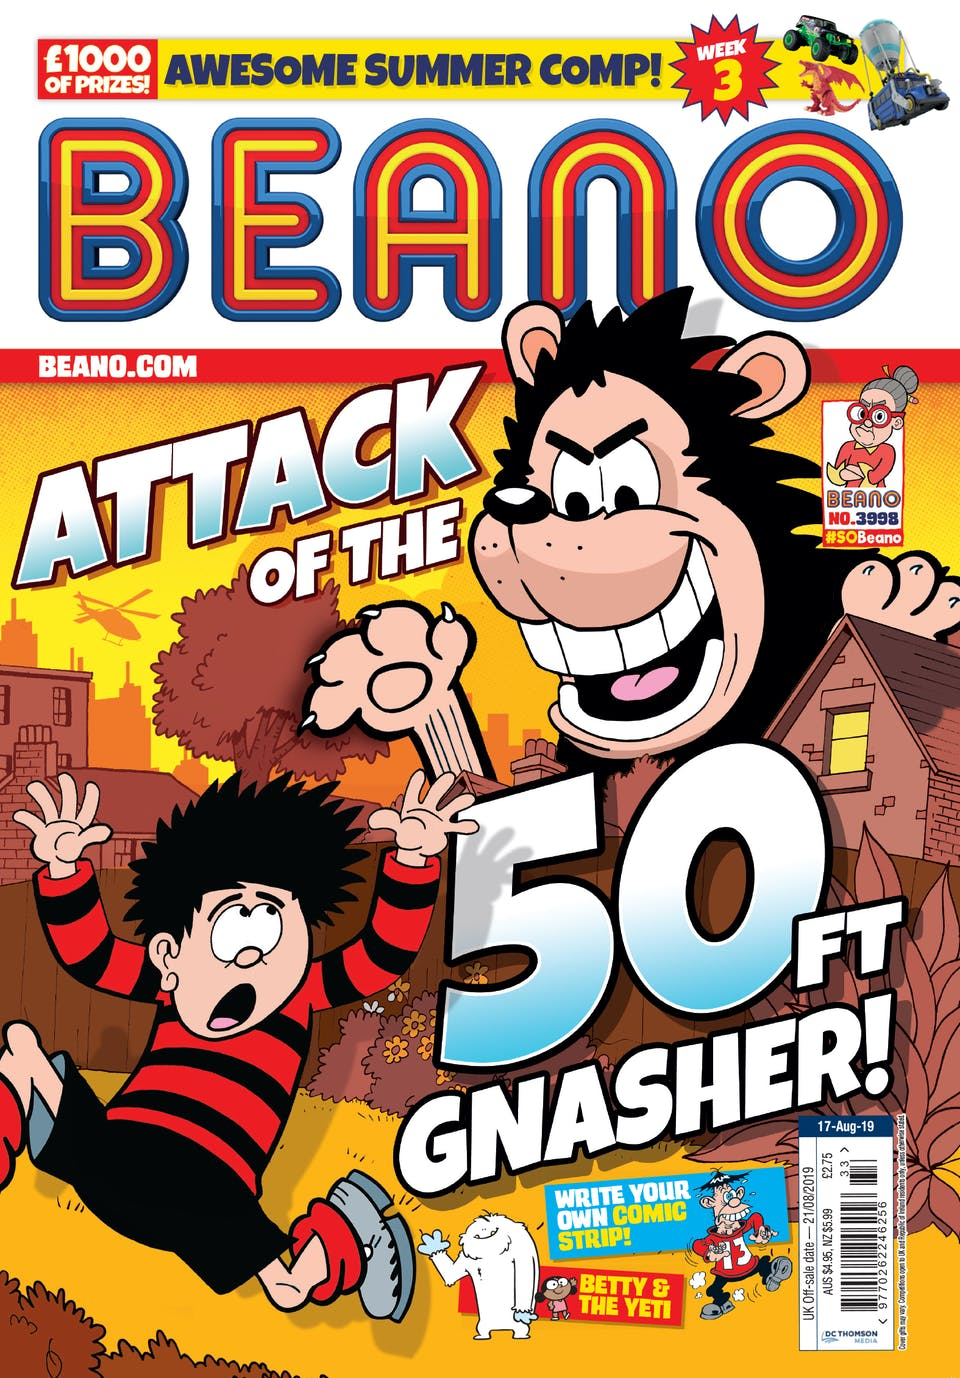 Beano 3998 - Attack of the 50ft Gnasher!